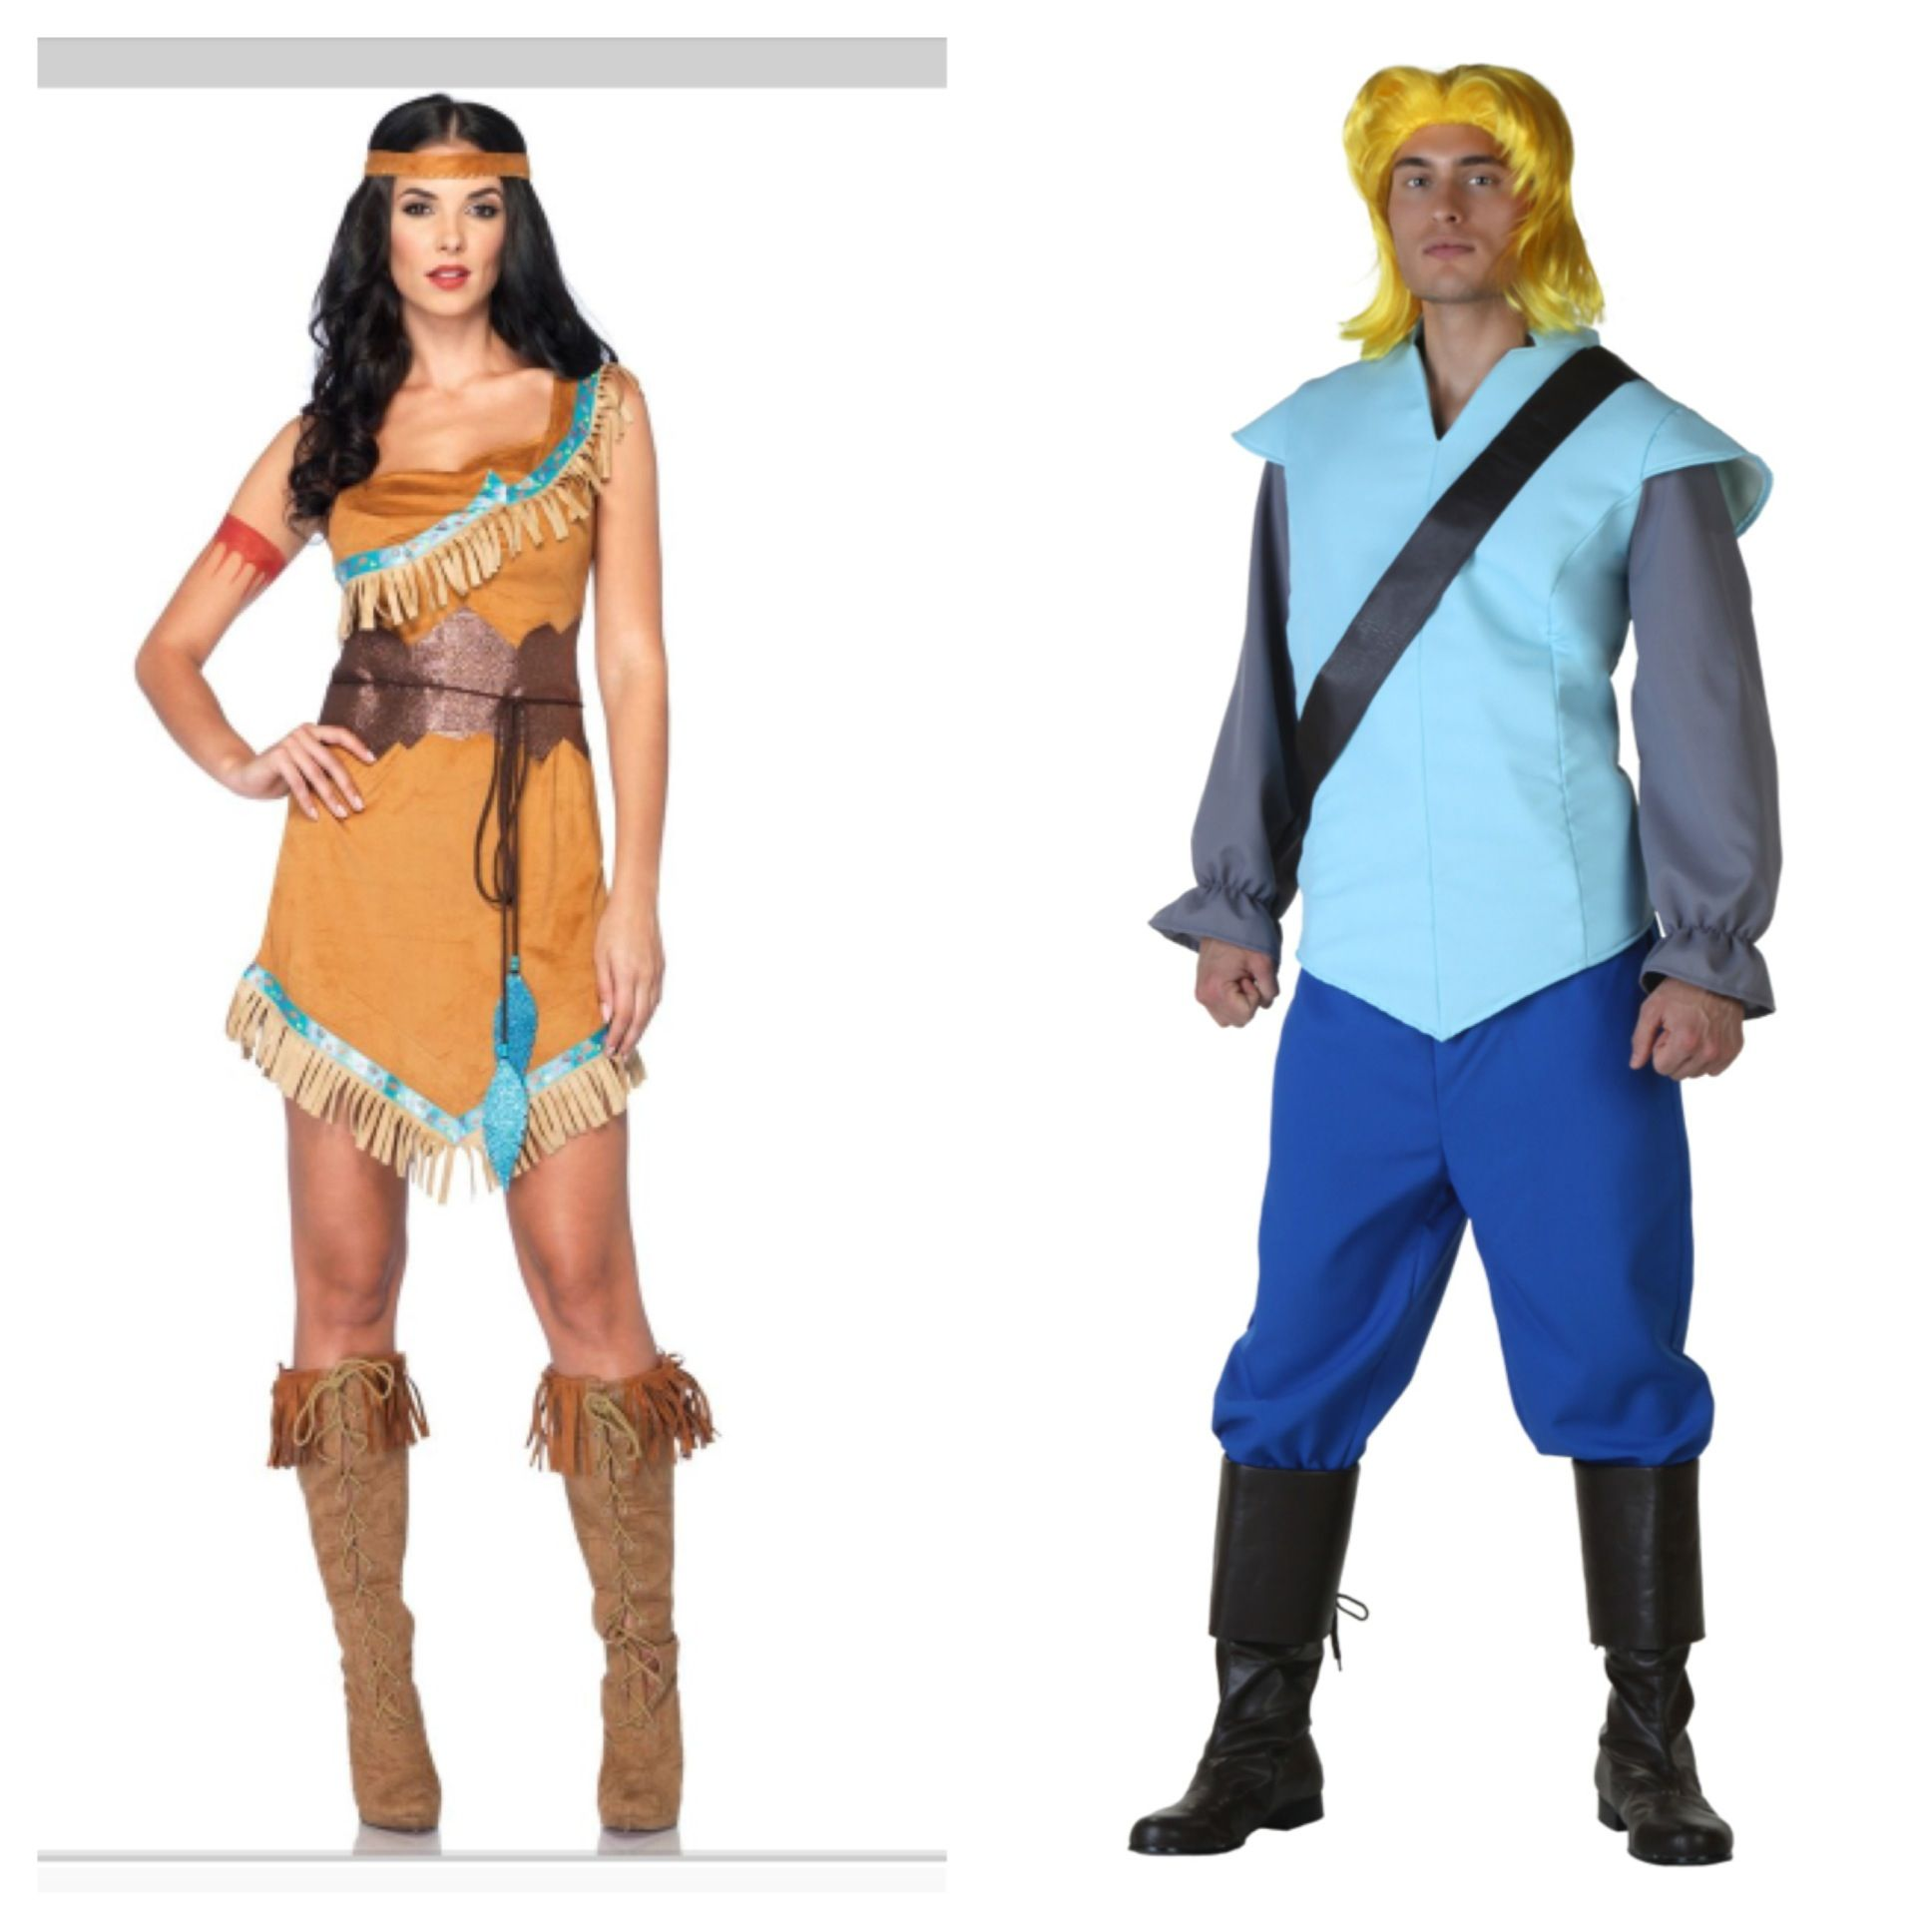 pocahontas and john smith couples costume costume party pinterest john smith costumes. Black Bedroom Furniture Sets. Home Design Ideas